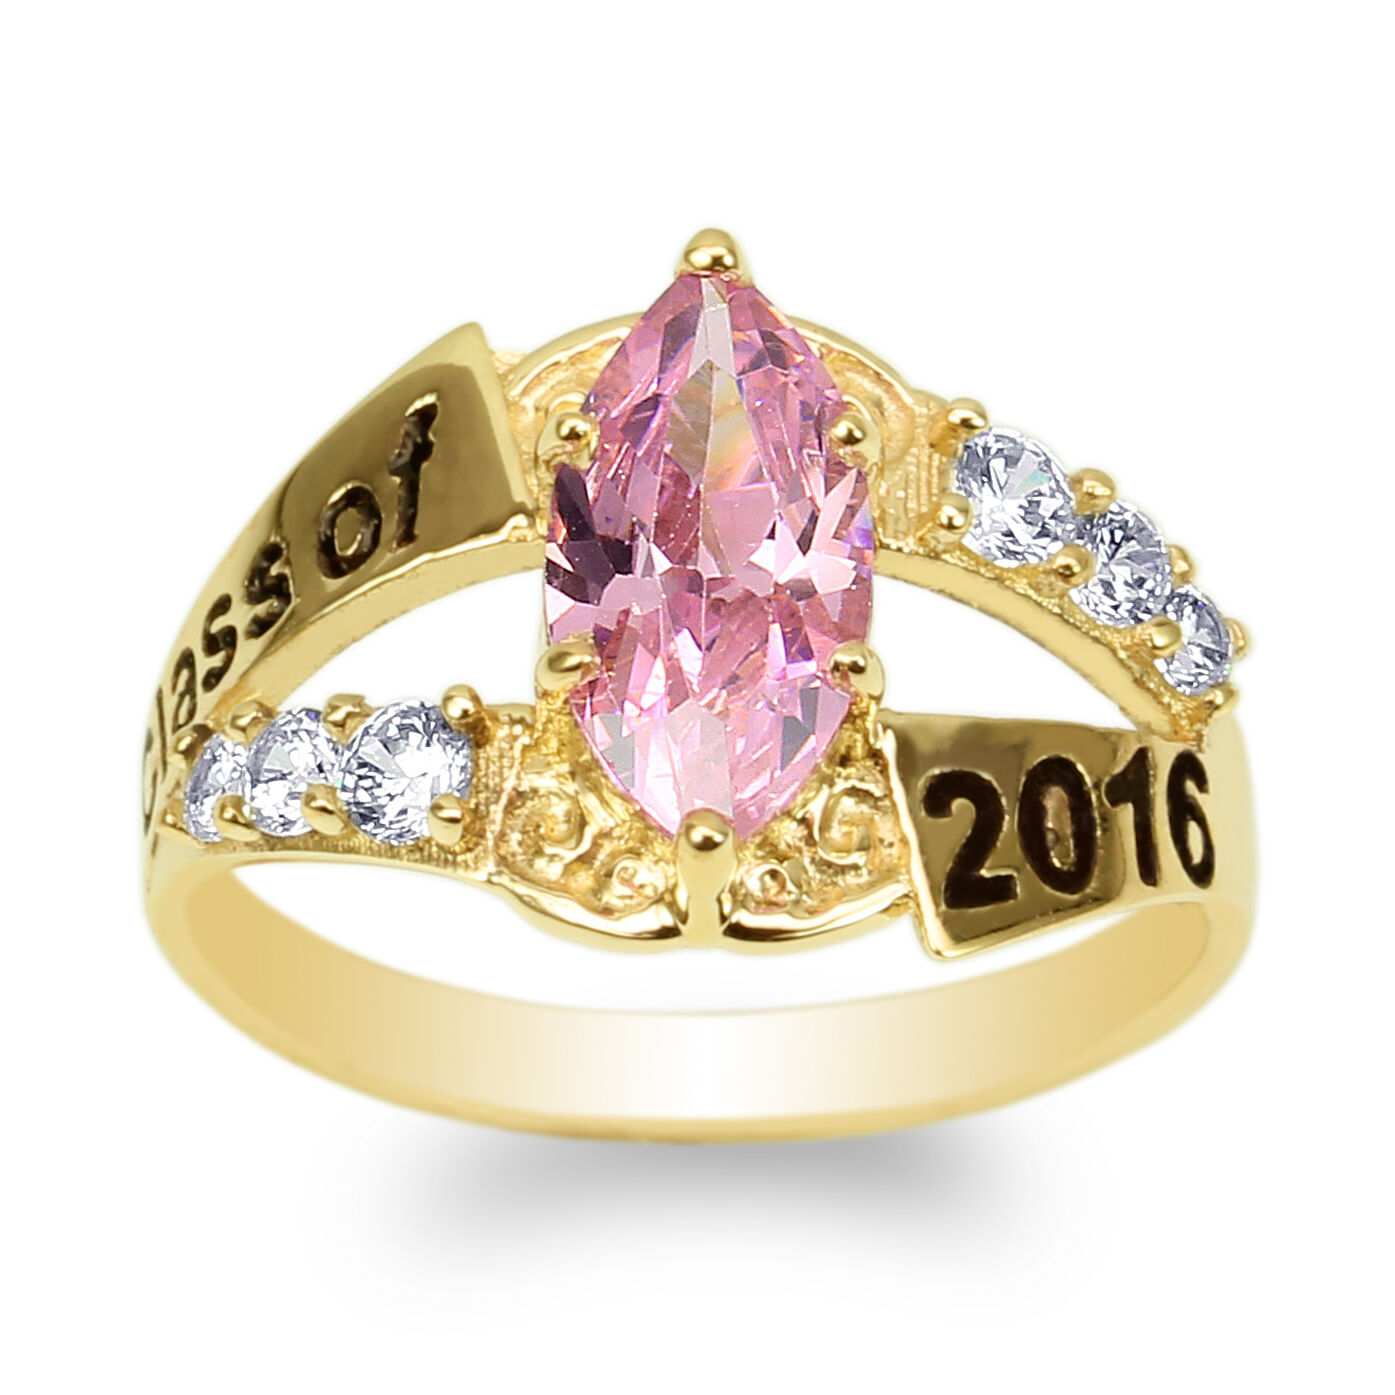 JamesJenny Yellow gold Plated 2016 Graduation Ring Marquise Pink CZ Size 4-9